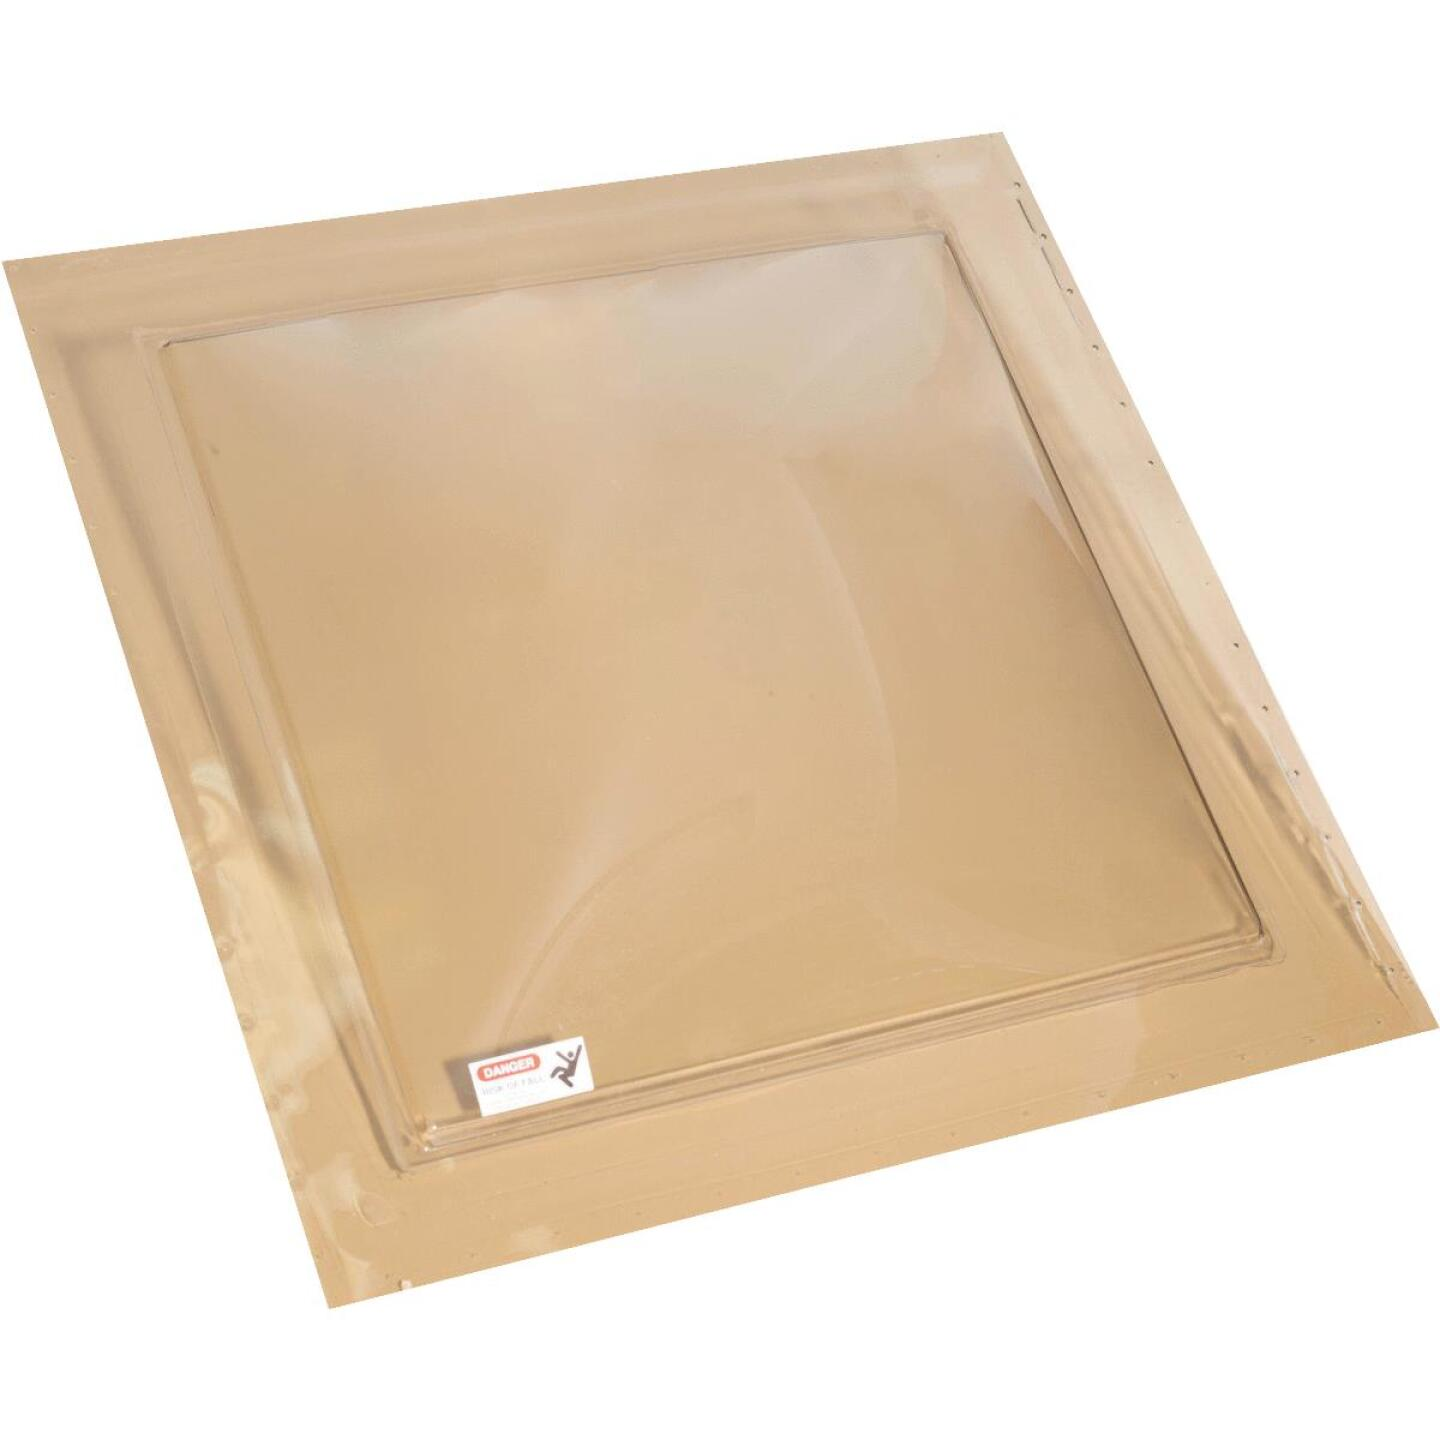 Kennedy Skylights 24 In. x 24 In. Bronze Self-Flashing Domed Skylight Image 1